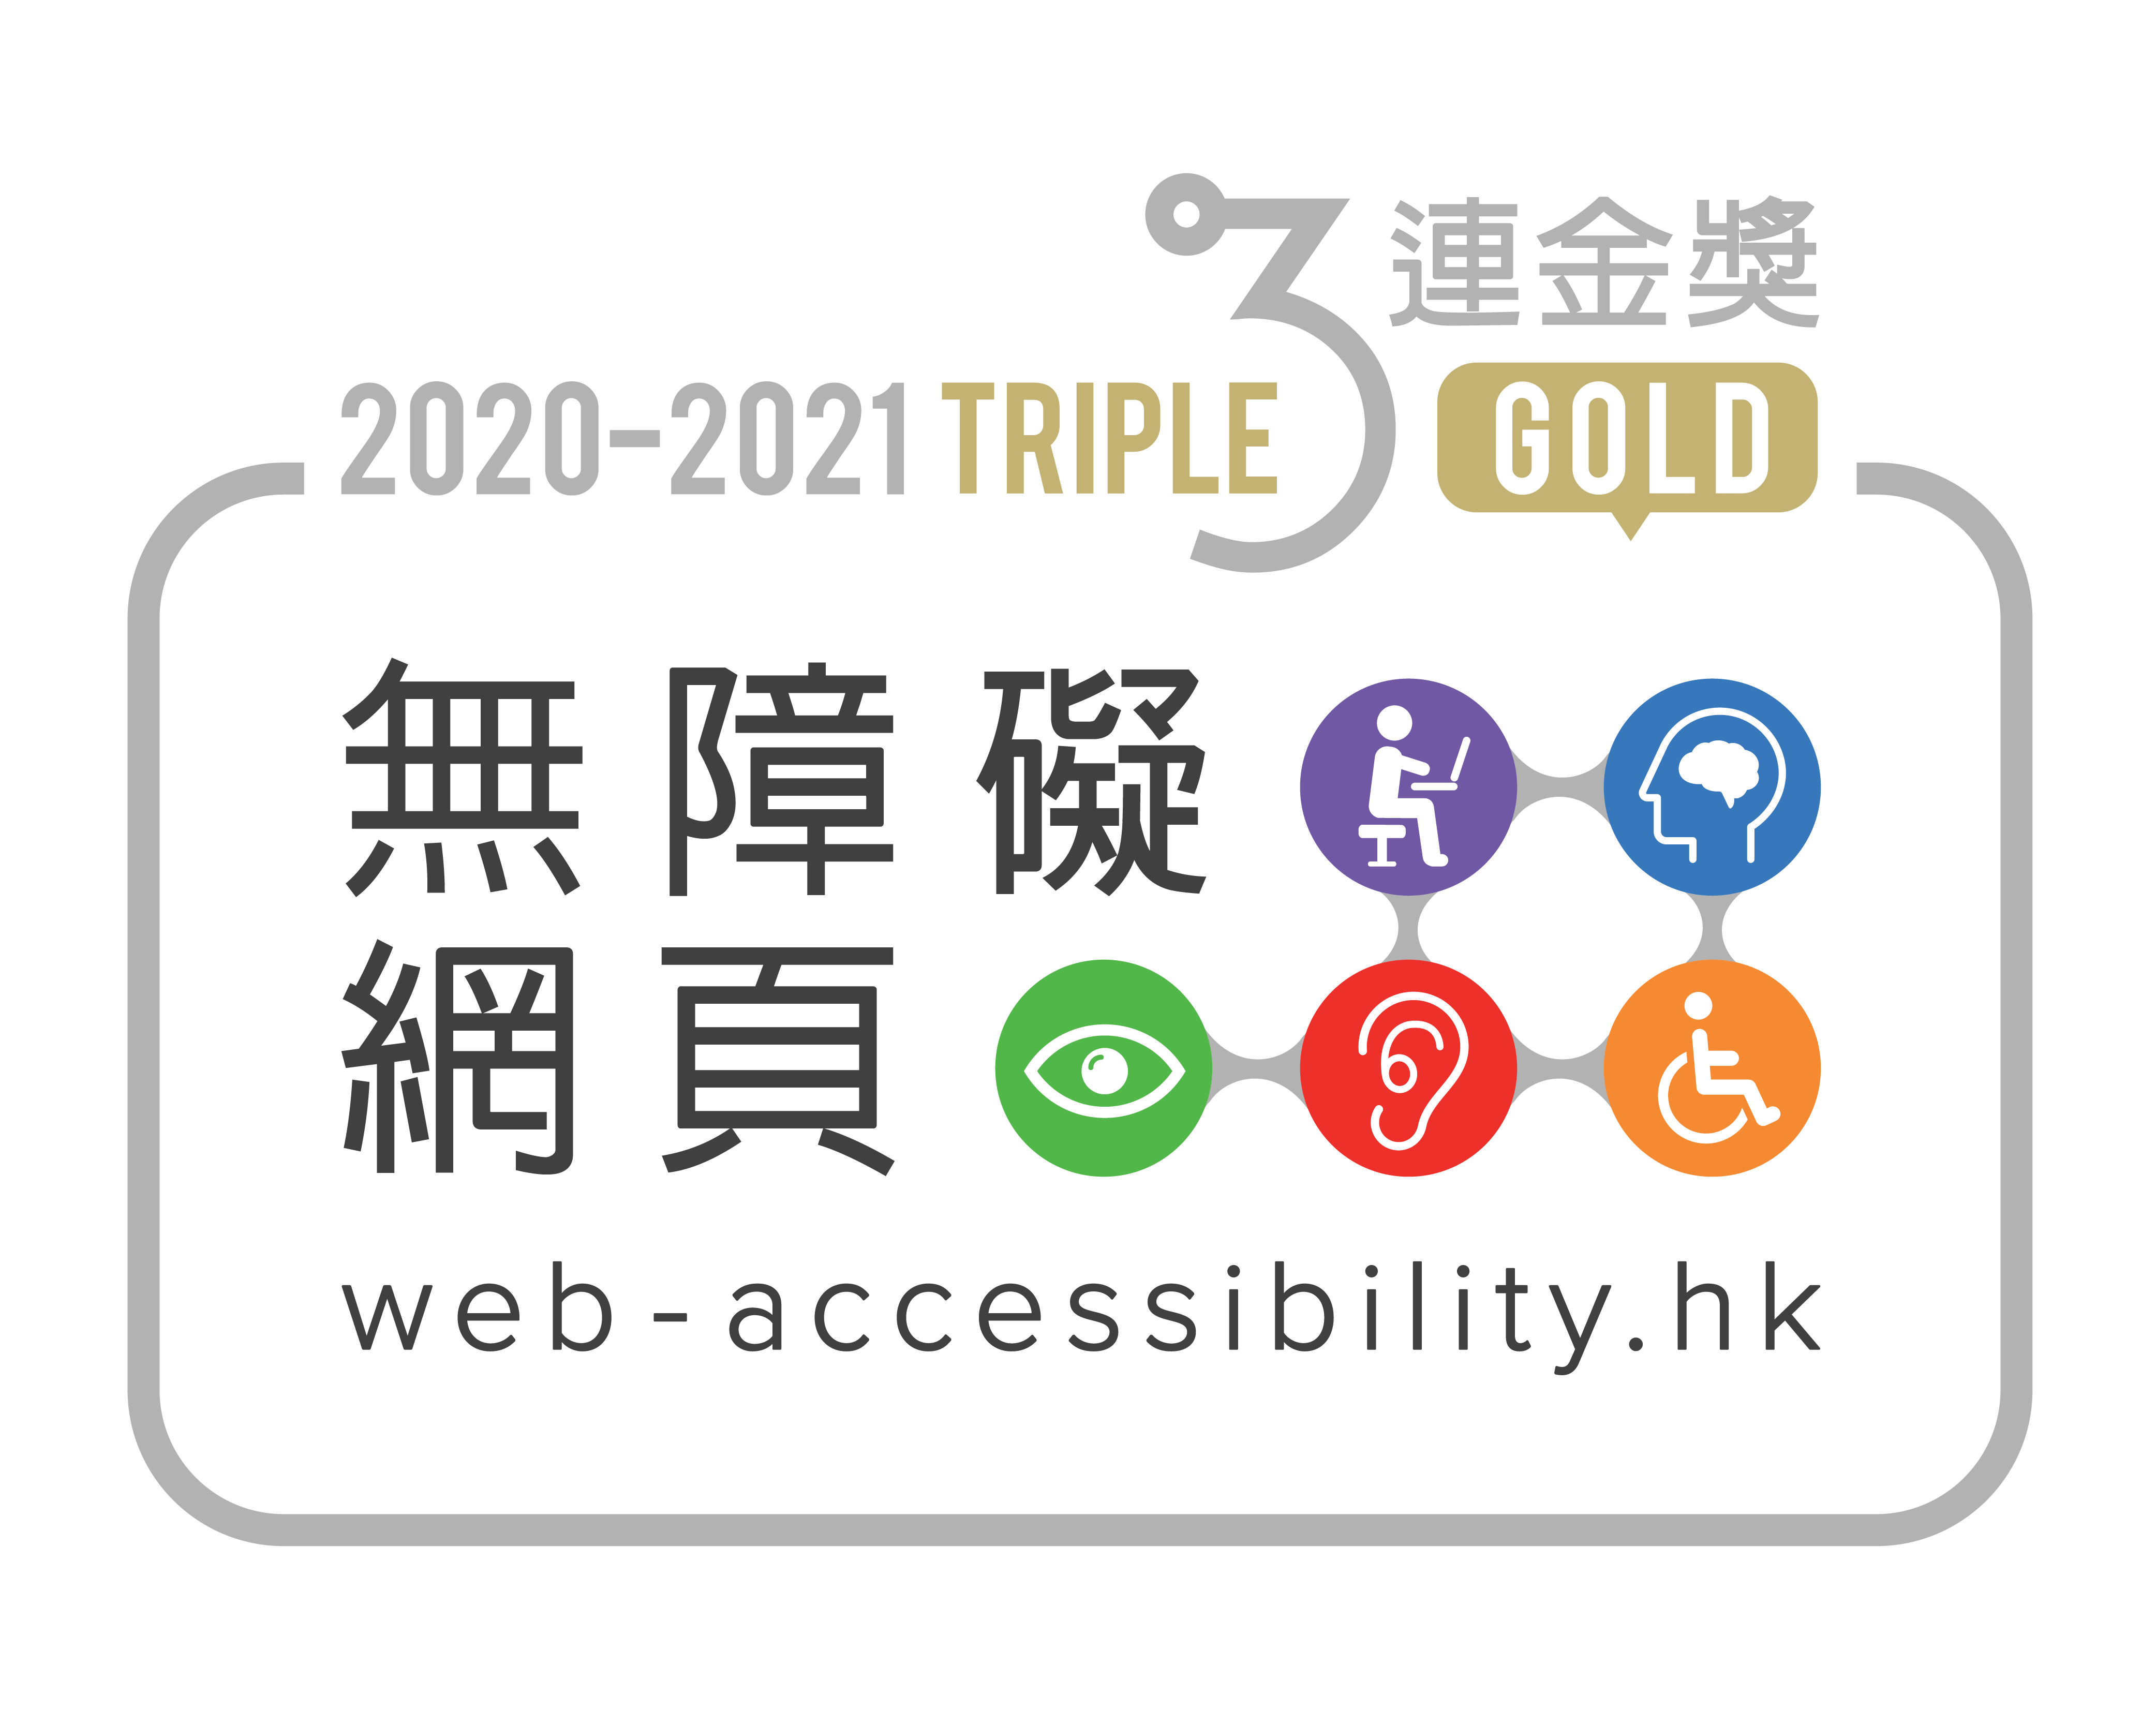 Web Accessibility 2020-2021 Triple Gold